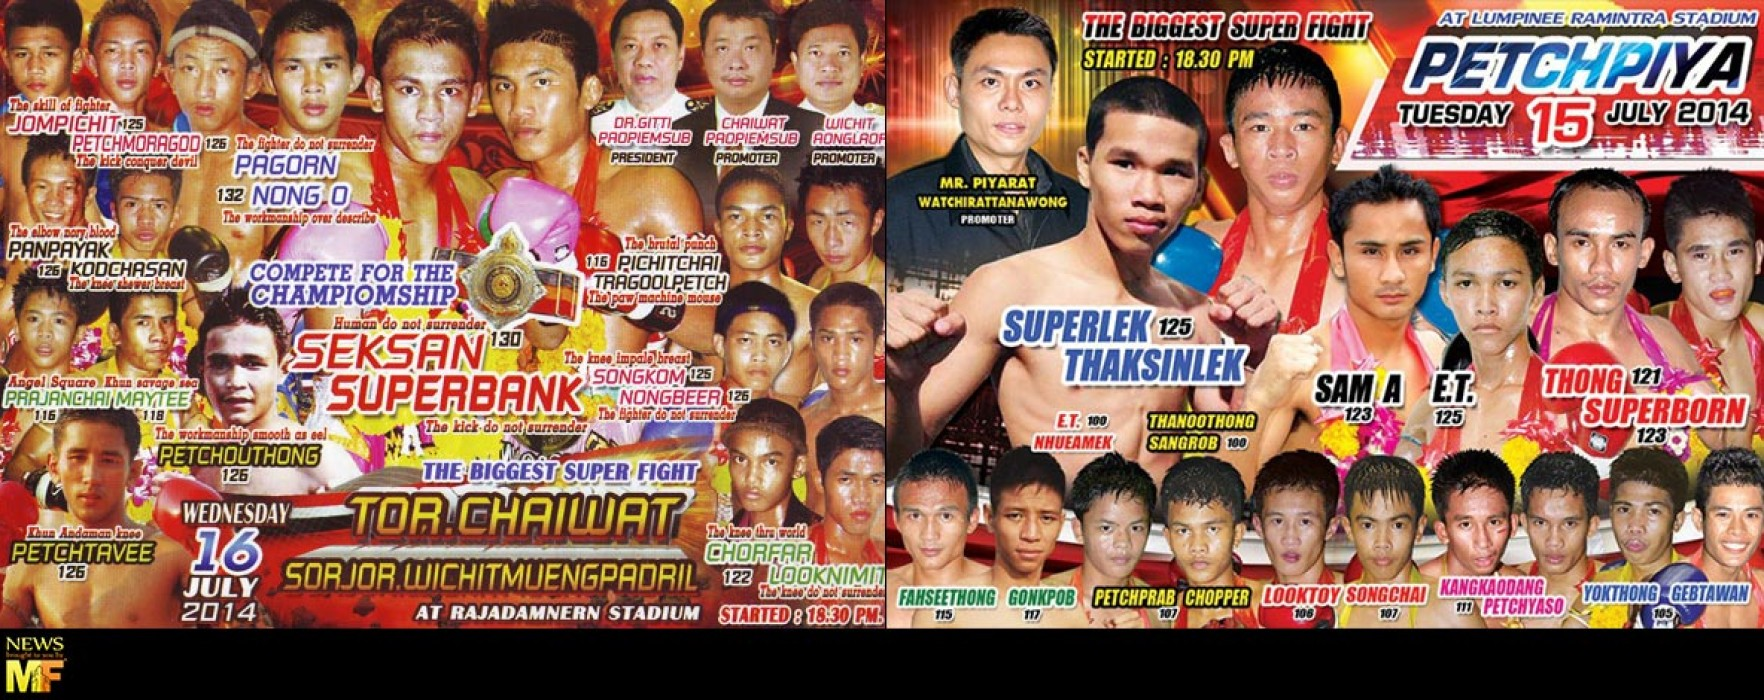 3 days of pure Muay Thai at Lumpinee & Rajadamnern with Sam-A, Superlek, Pakorn, Nong-O and others!